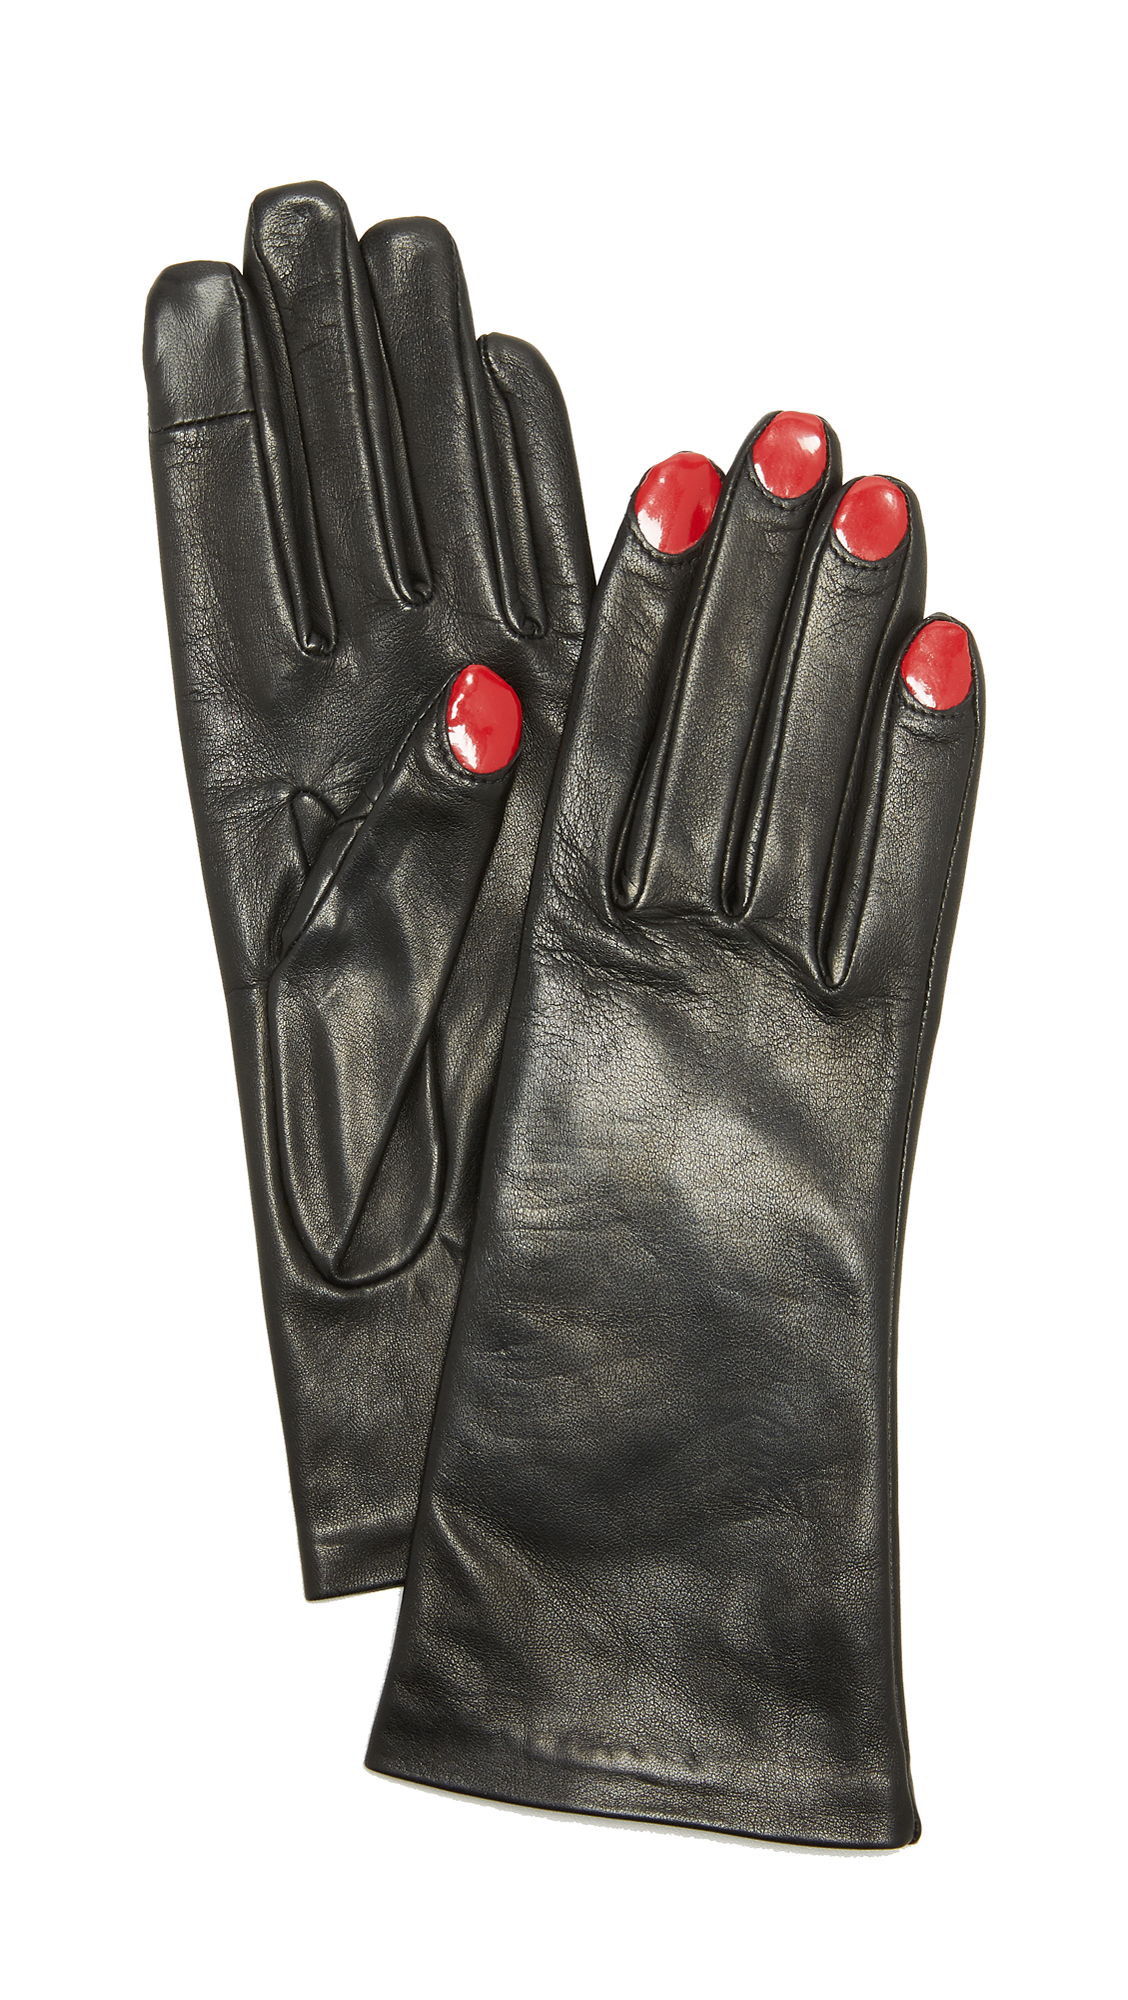 Agnelle Elsa Leather Gloves - Black/Red